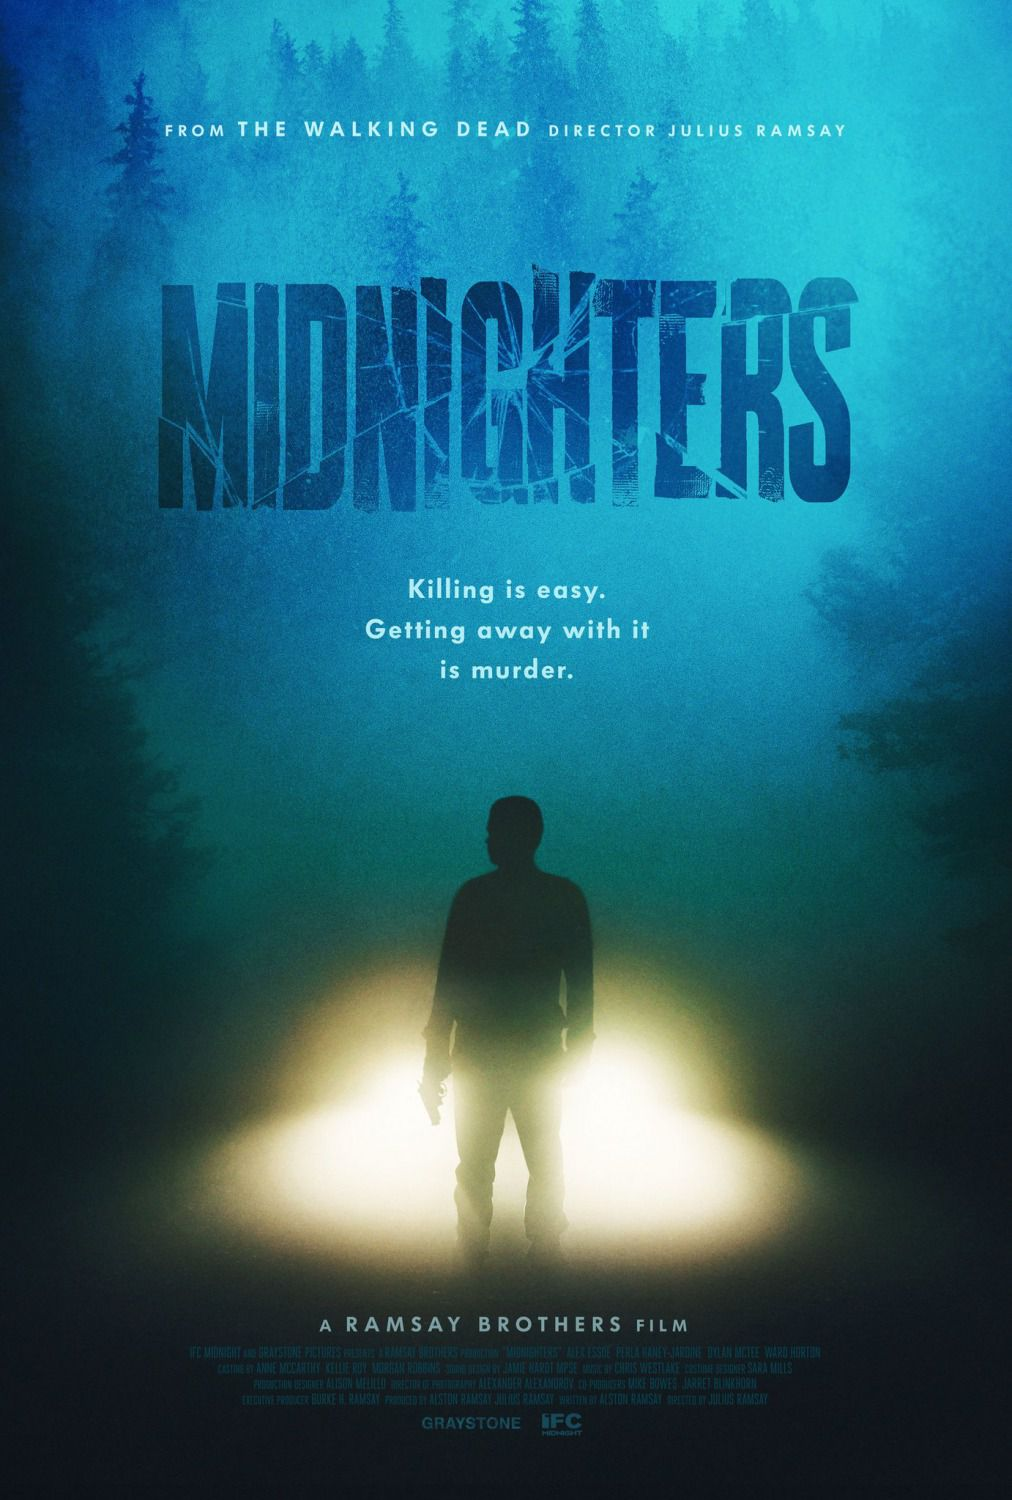 Midnighters - killing is easy, getting away with it is Murder - thiller film poster 2018